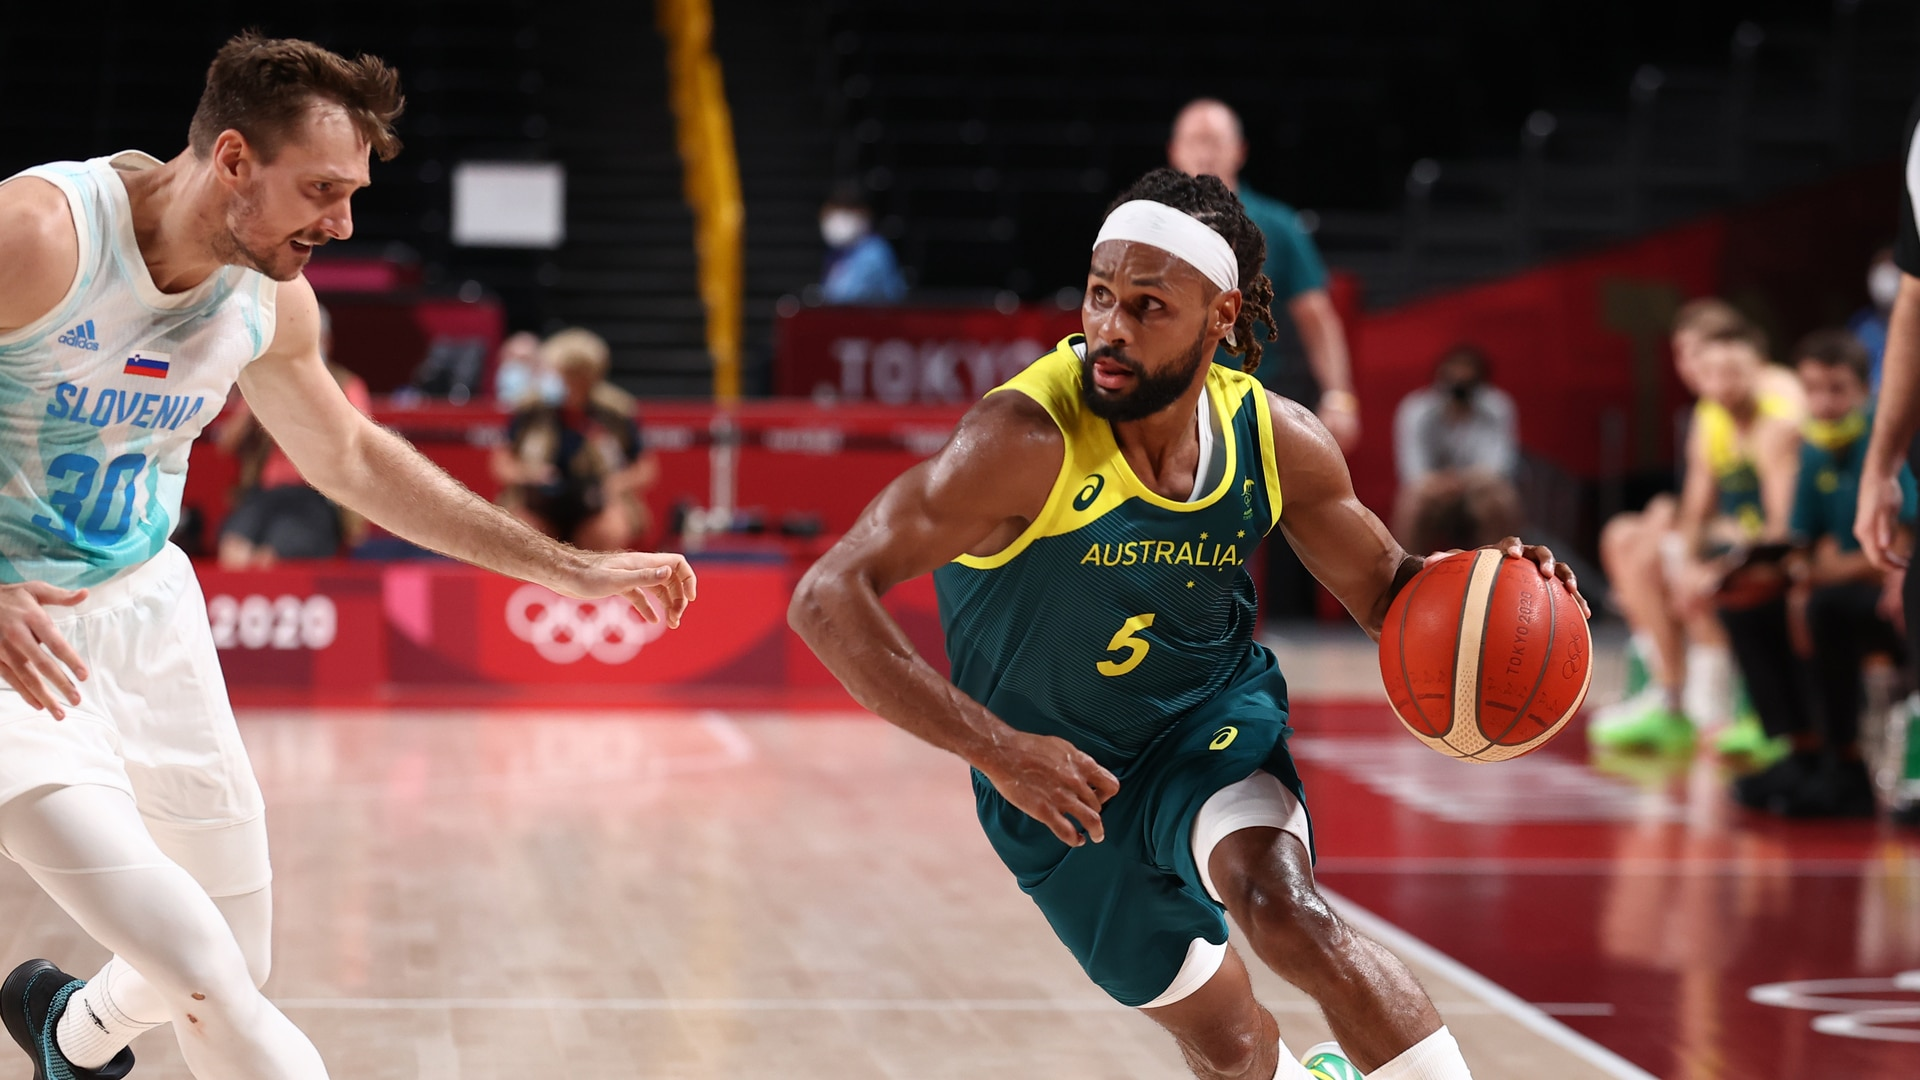 Patty Mills and the Australia men's basketball team face Slovenia in the bronze medal game at the 2020 Tokyo Olympics.